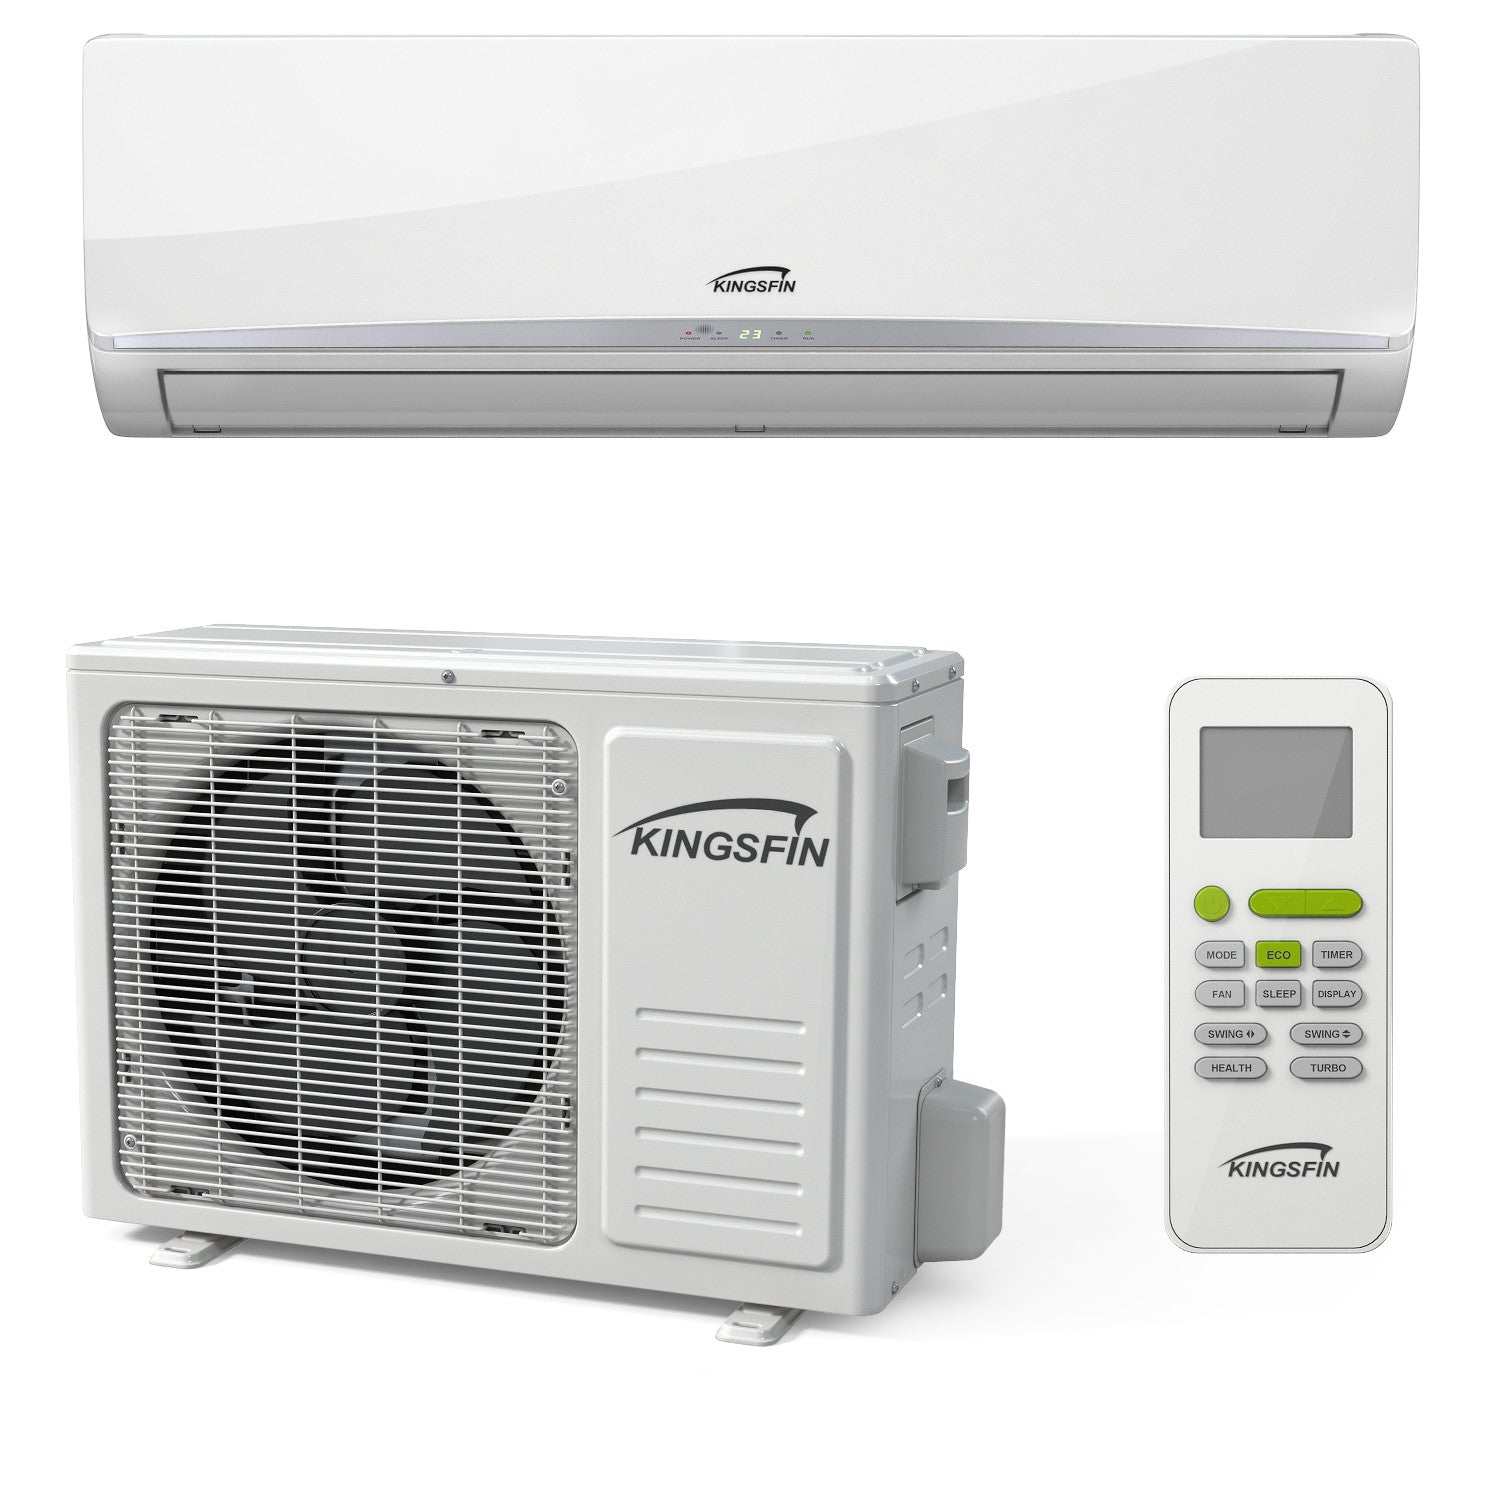 Kingsfin mini split ductless ac air conditioner and heat Ductless ac